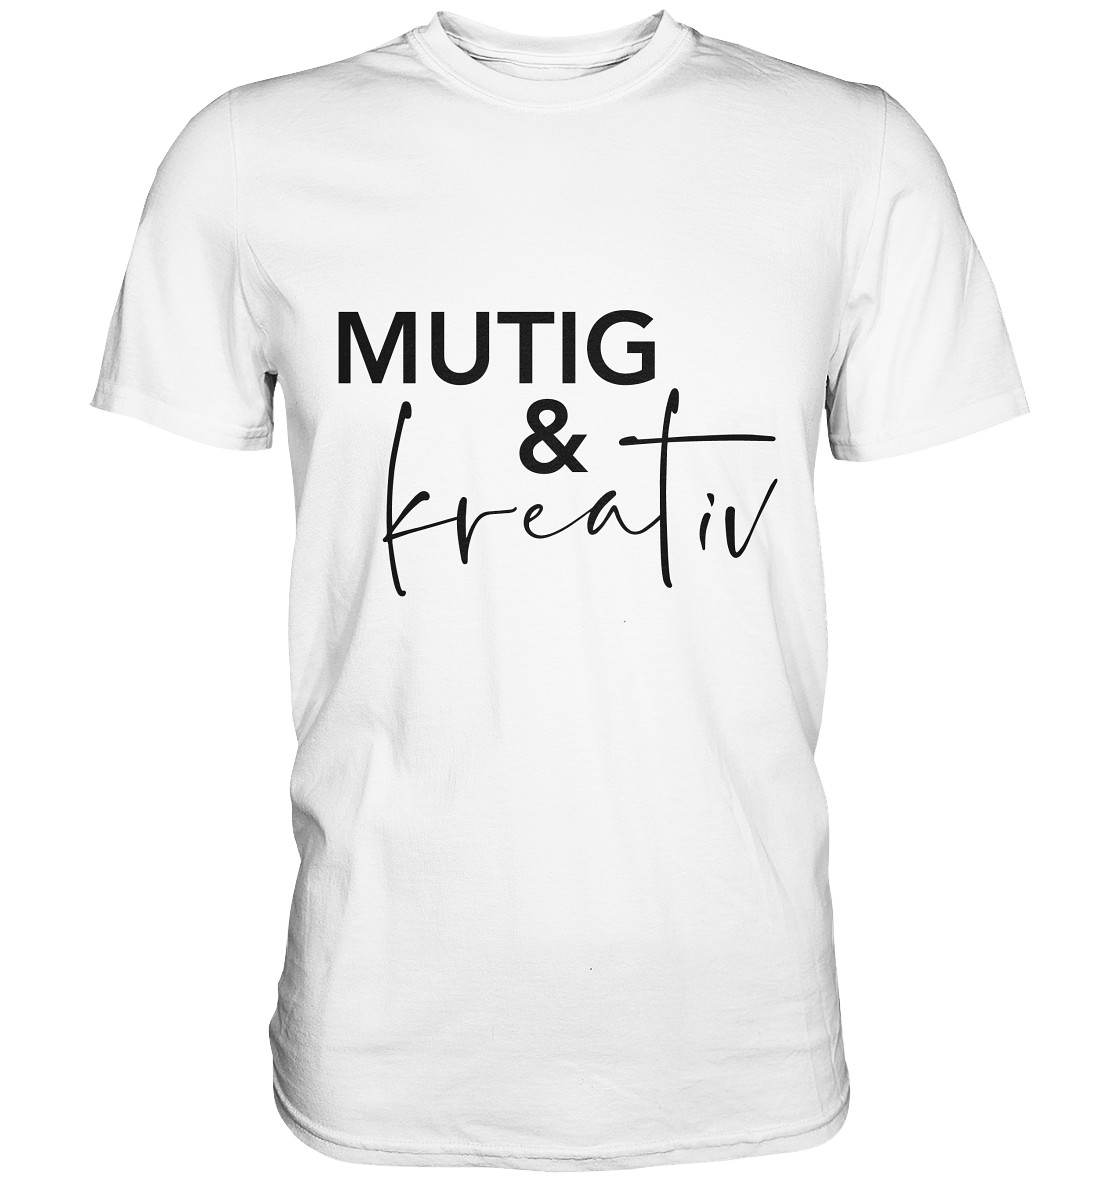 """Mutig & kreativ"" Motivations-T-Shirt Premium weiss"